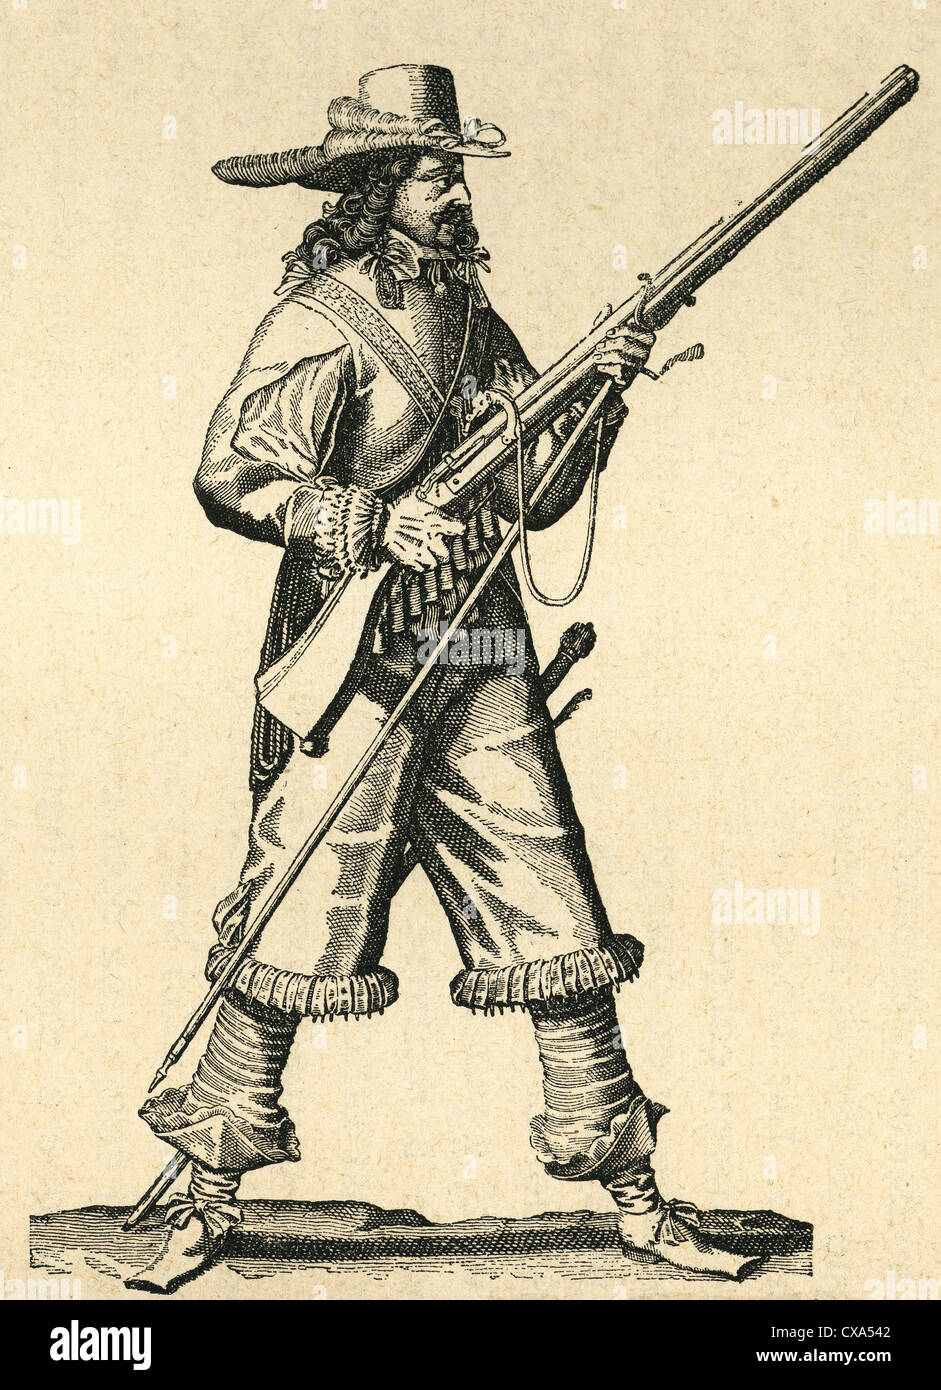 France. Army of the 18th century. Musketeer of the Infantry of Louis XIV with his musket. Engraving. - Stock Image